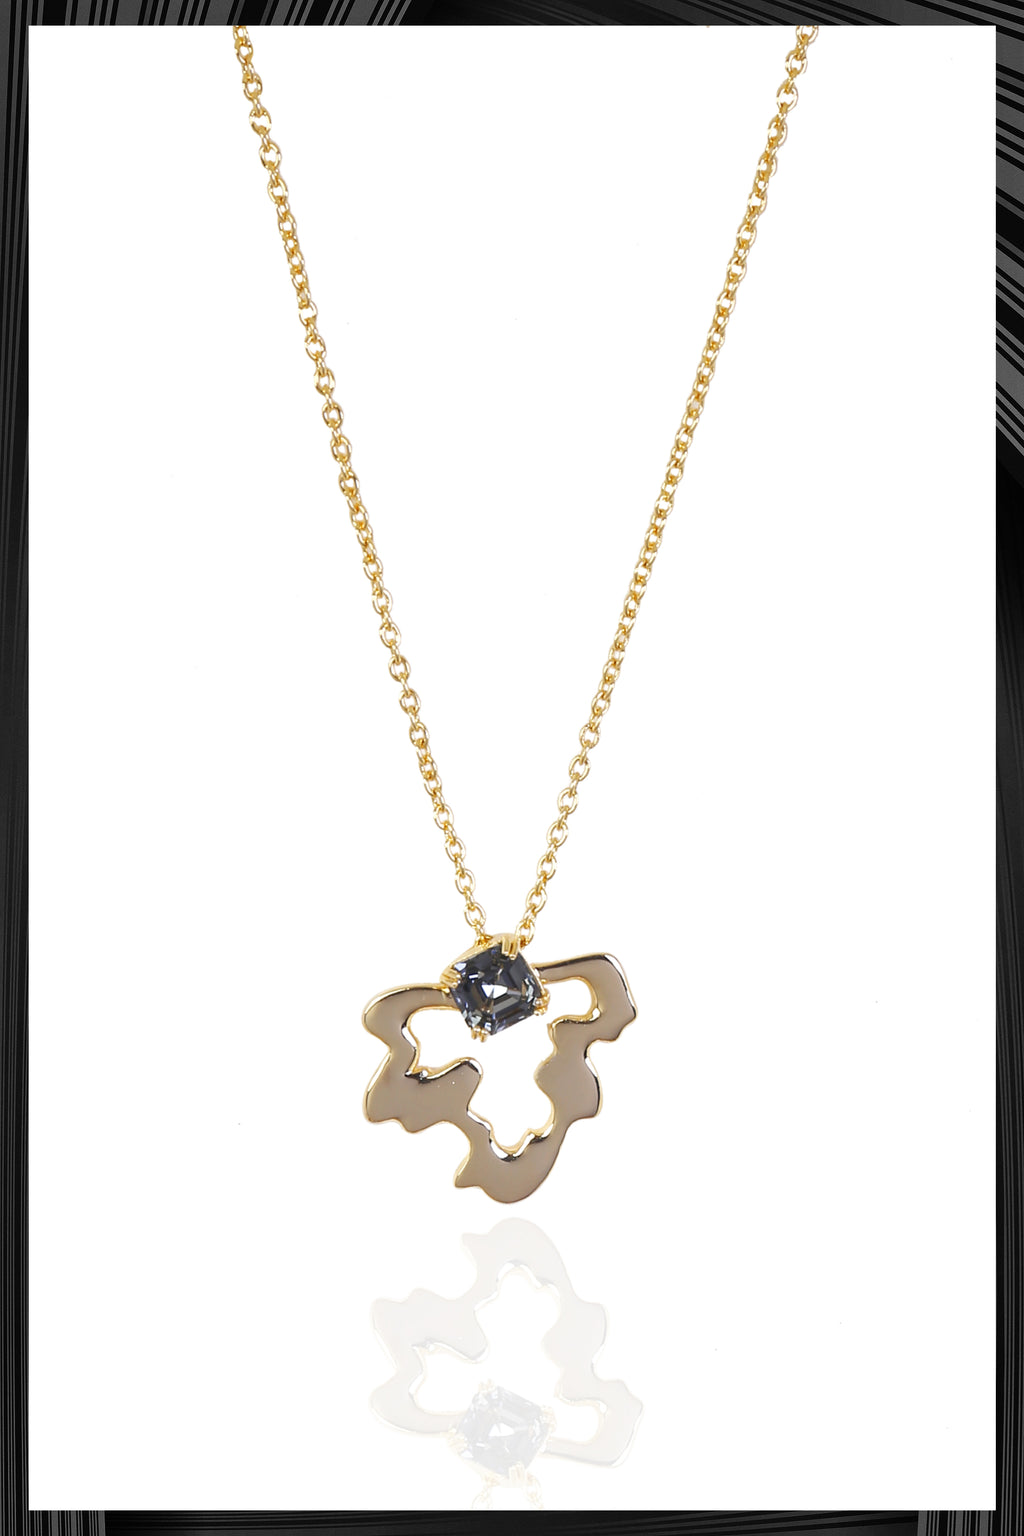 Gray Pendant Naia Necklace | Free Delivery - Quick Shipping